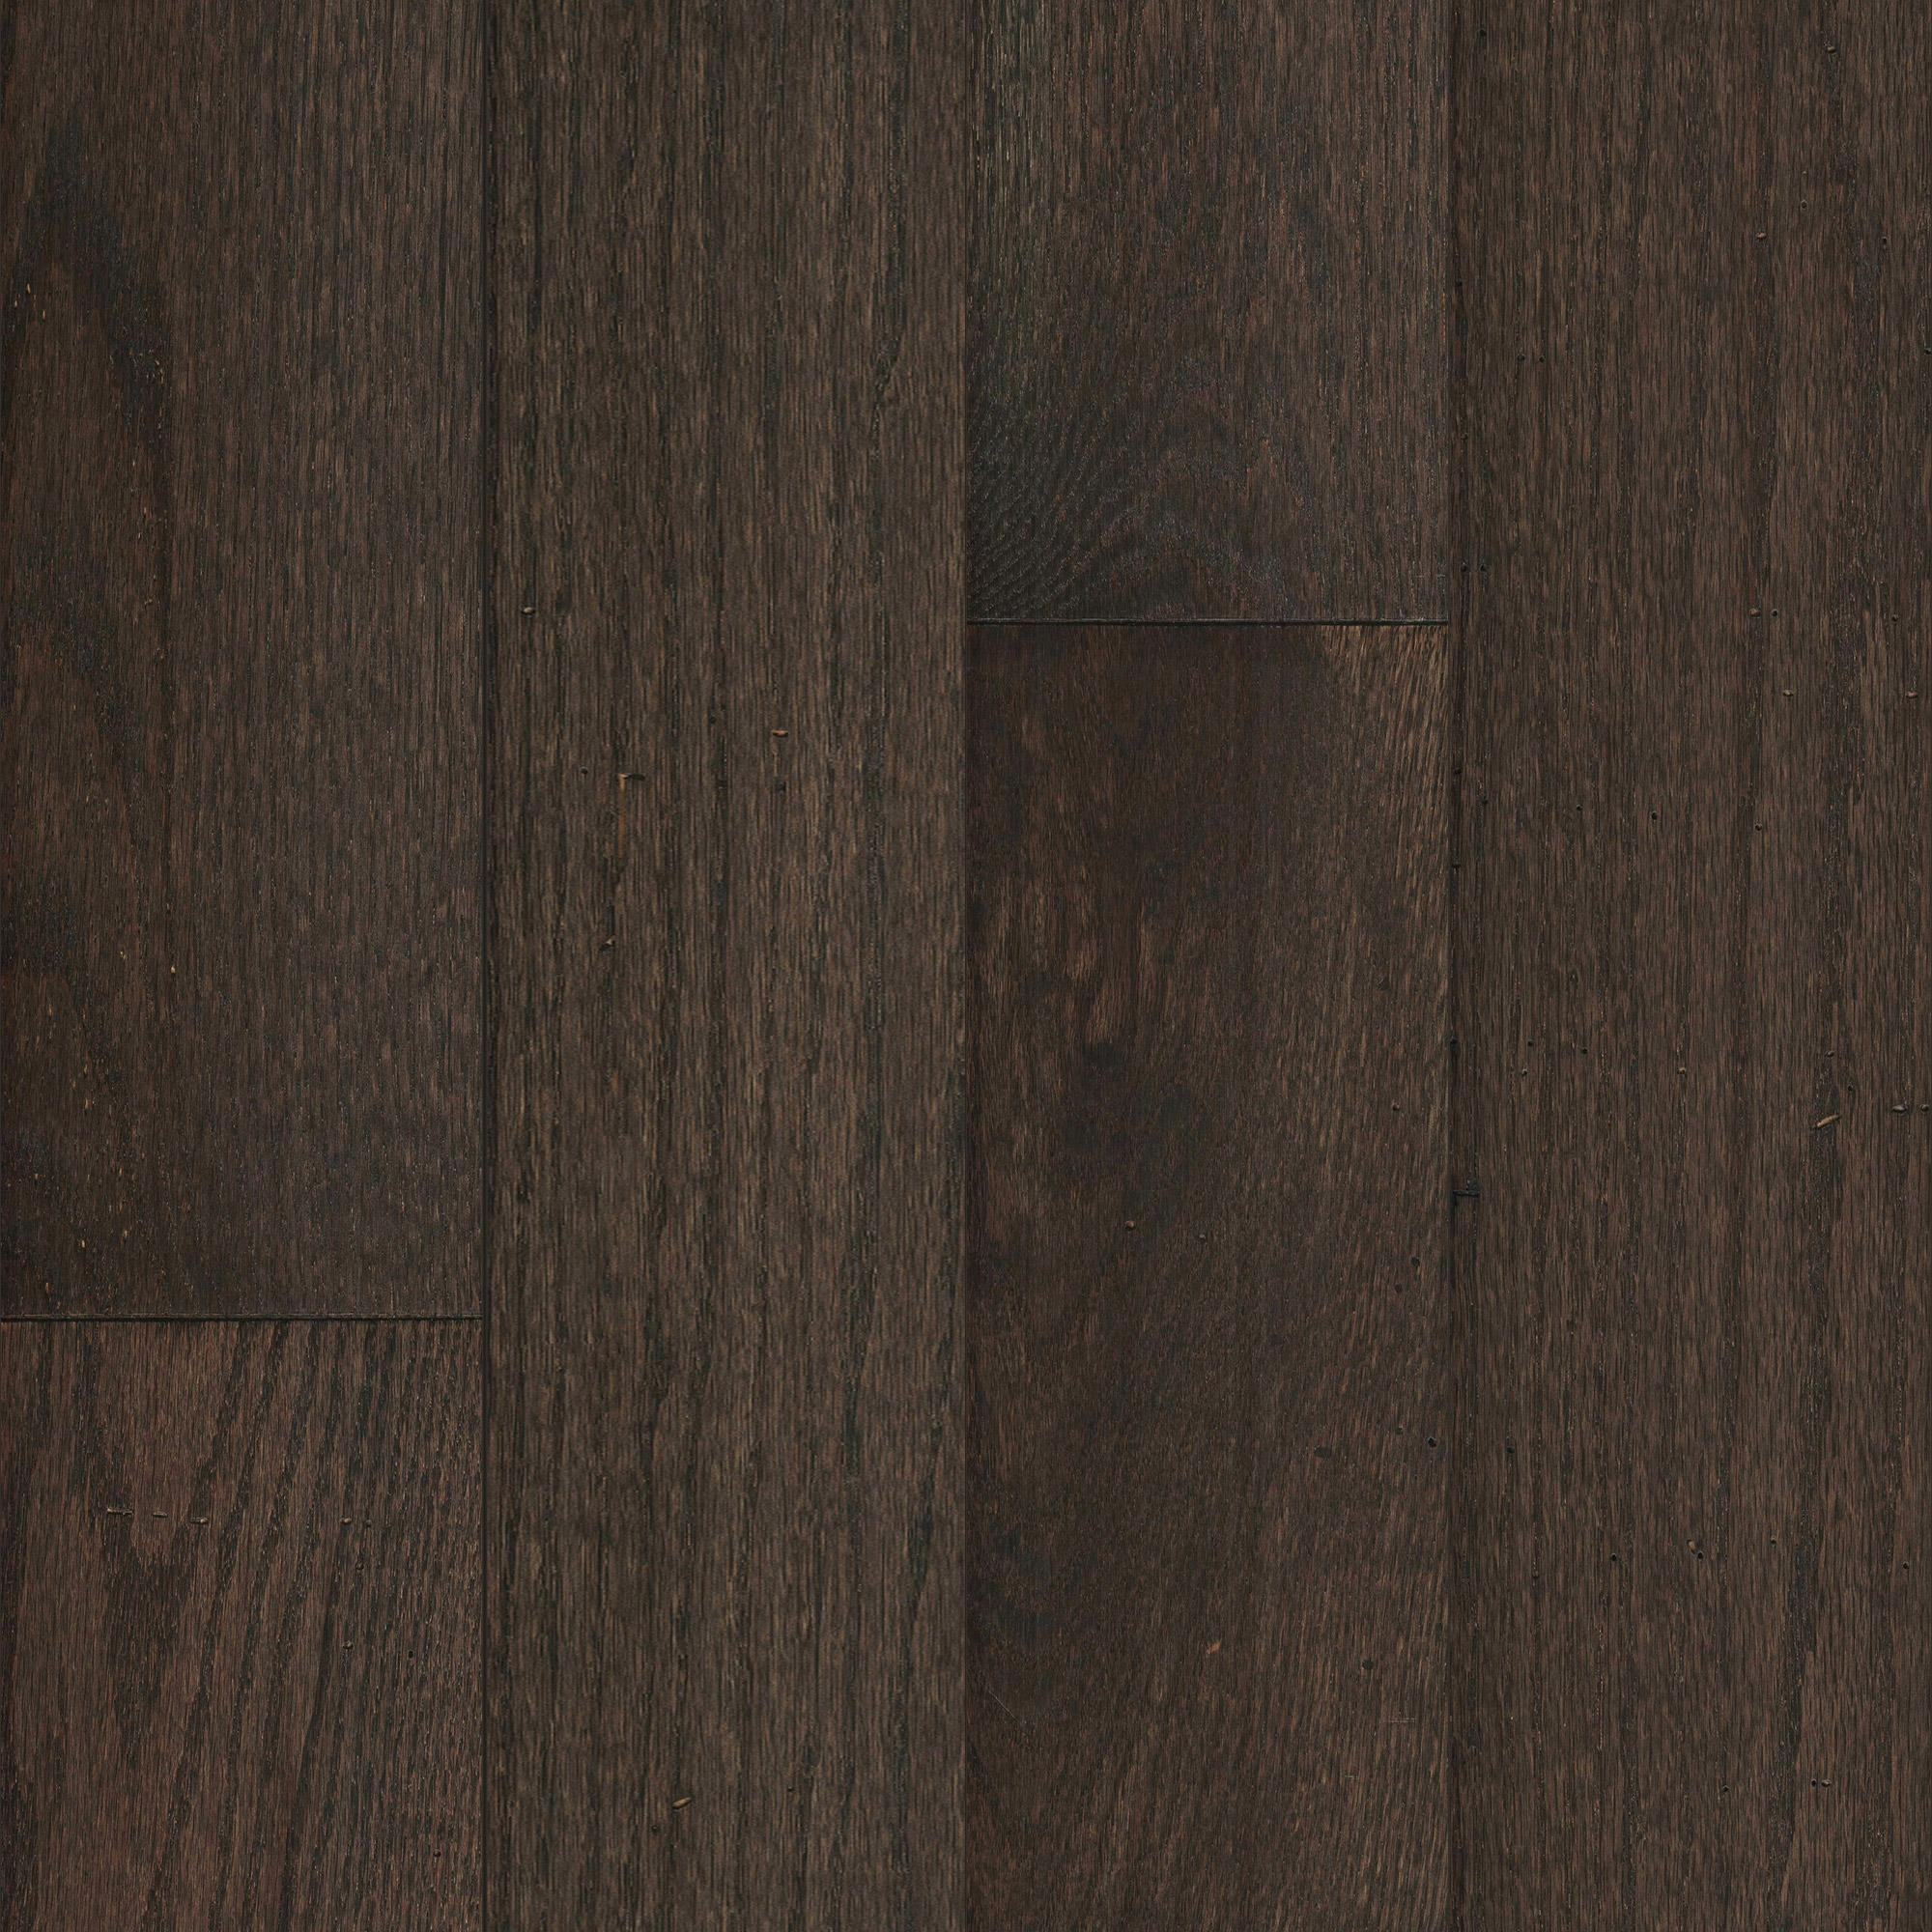 red oak unfinished hardwood flooring for sale of mullican muirfield oak granite 5 wide solid hardwood flooring inside file 447 15